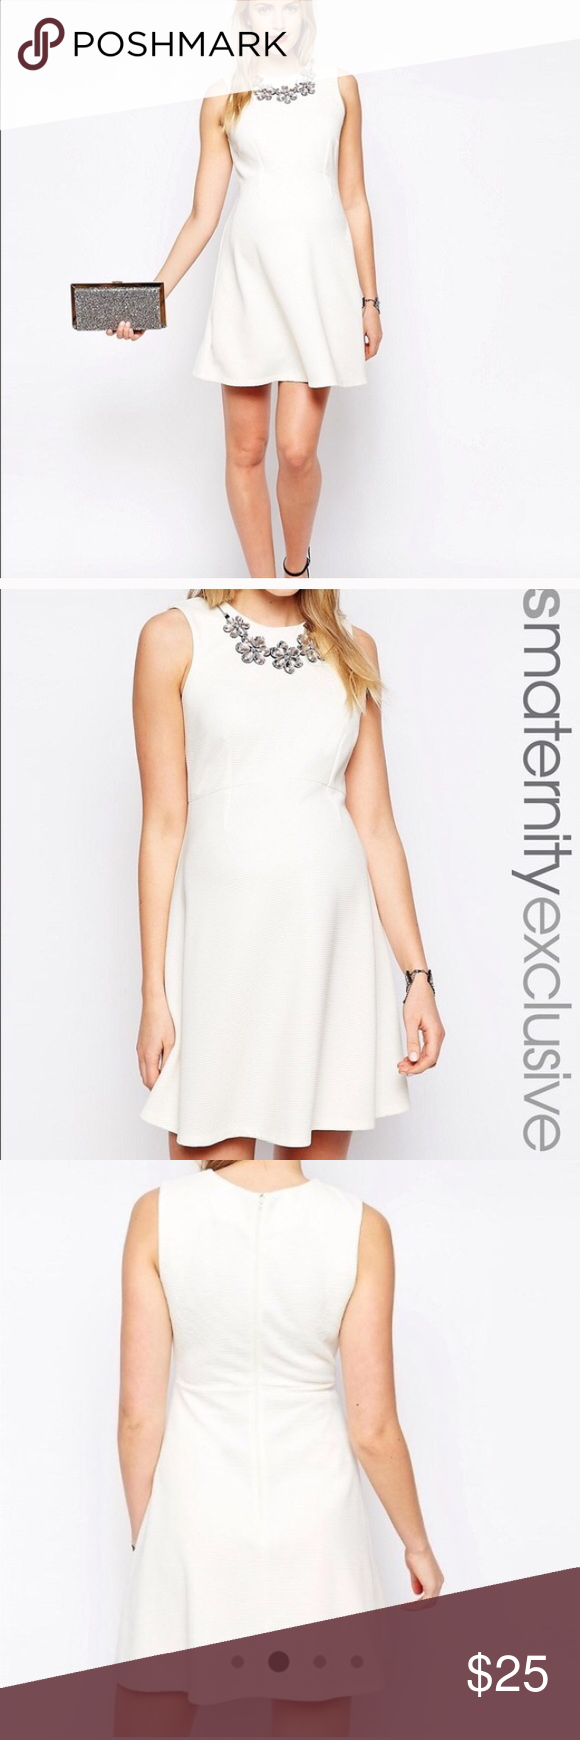 Asos maternity embellished necklace dress size 12 nwt asos dads asos maternity embellished necklace dress size 12 dress is brand new with tags gorgeous cream ombrellifo Image collections